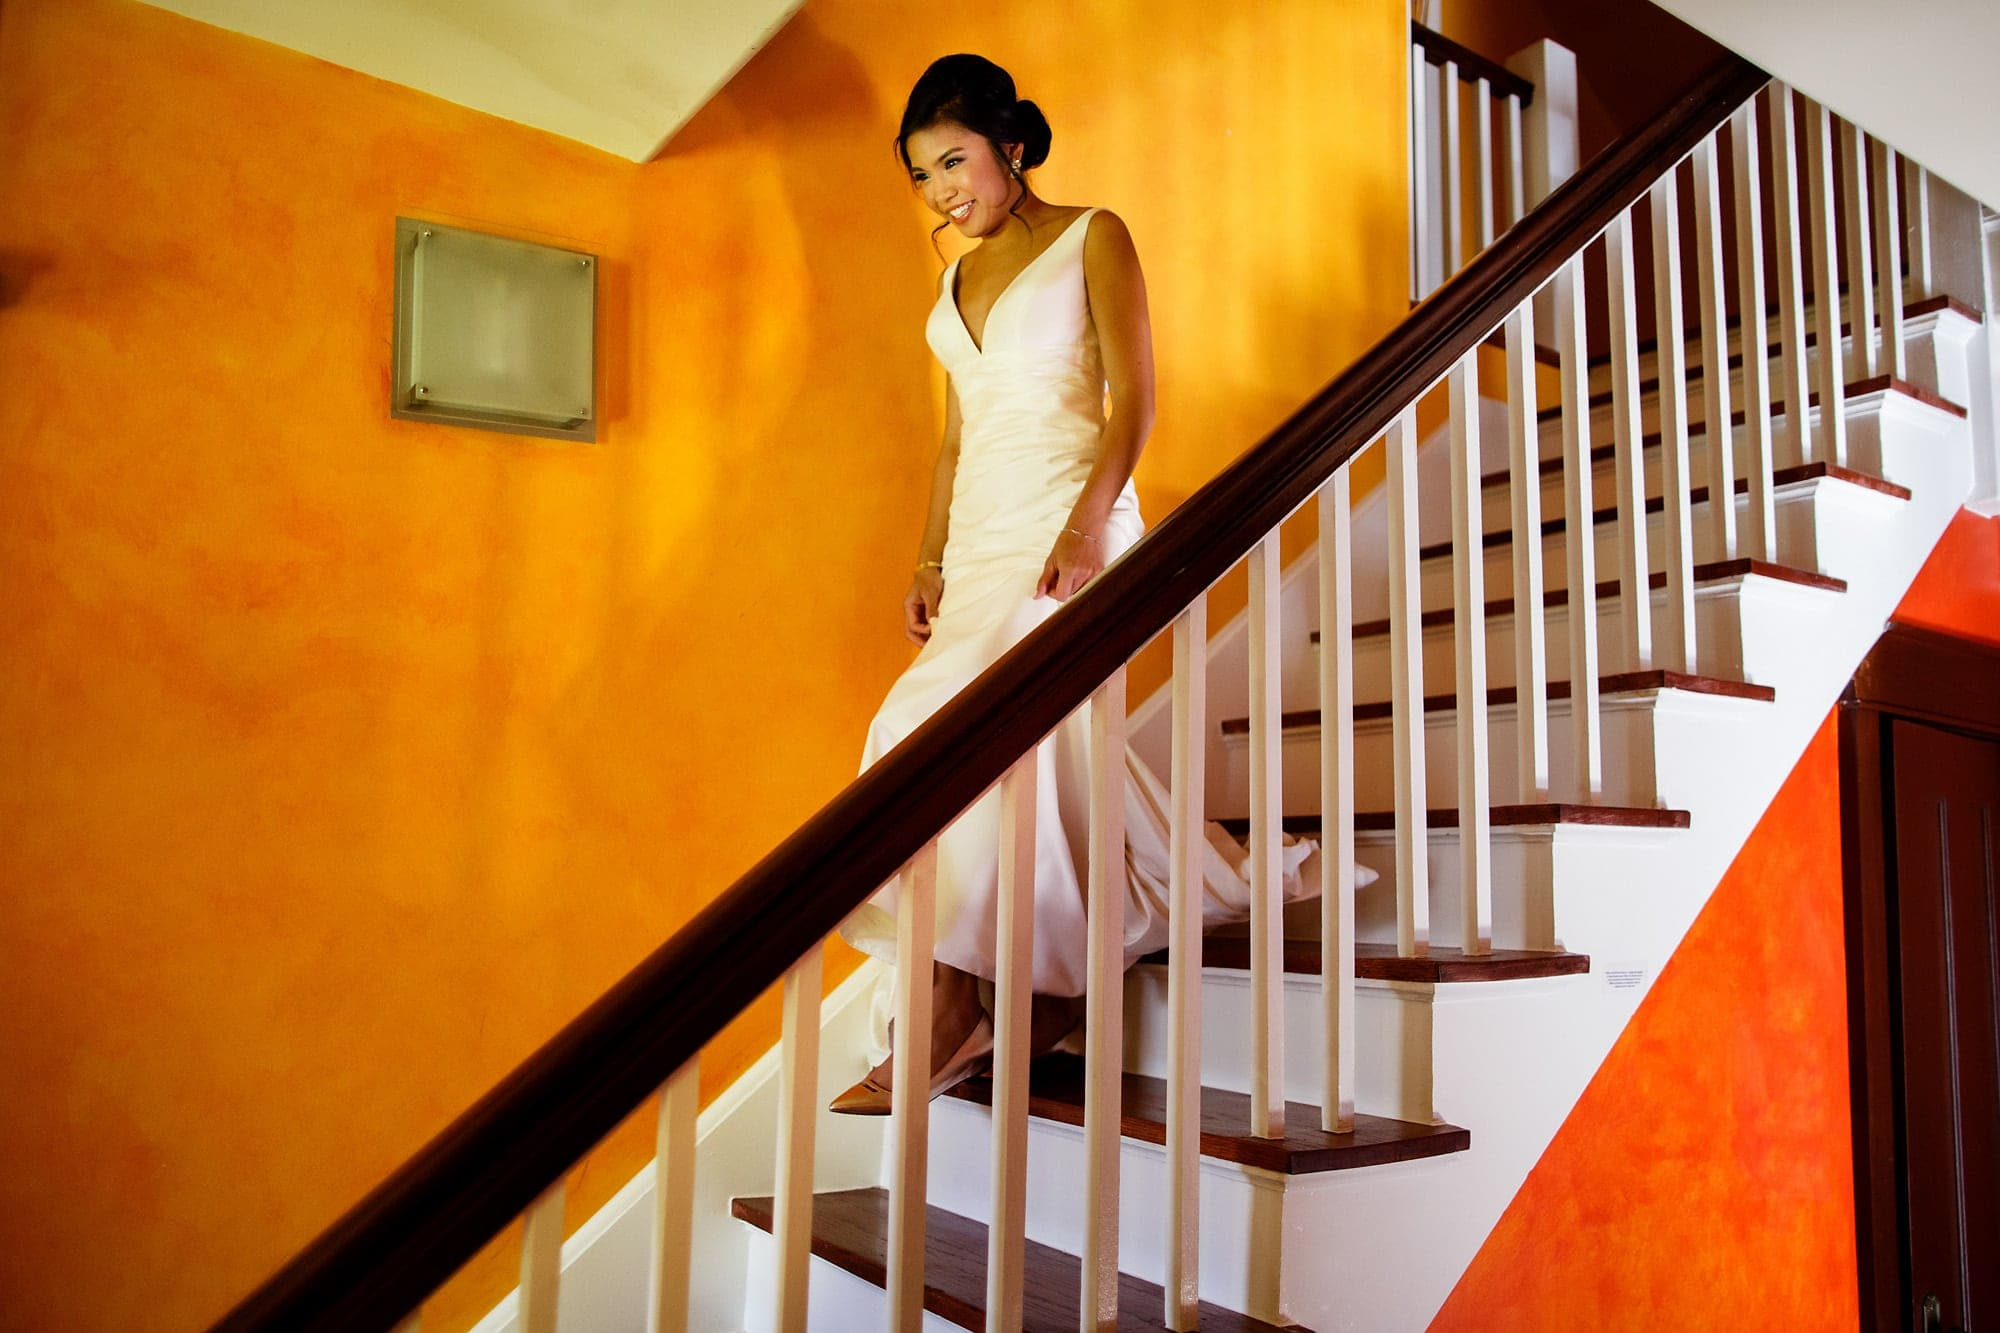 Megan walks down the stairs for the first time in her wedding dress at an Air BnB home in Boulder